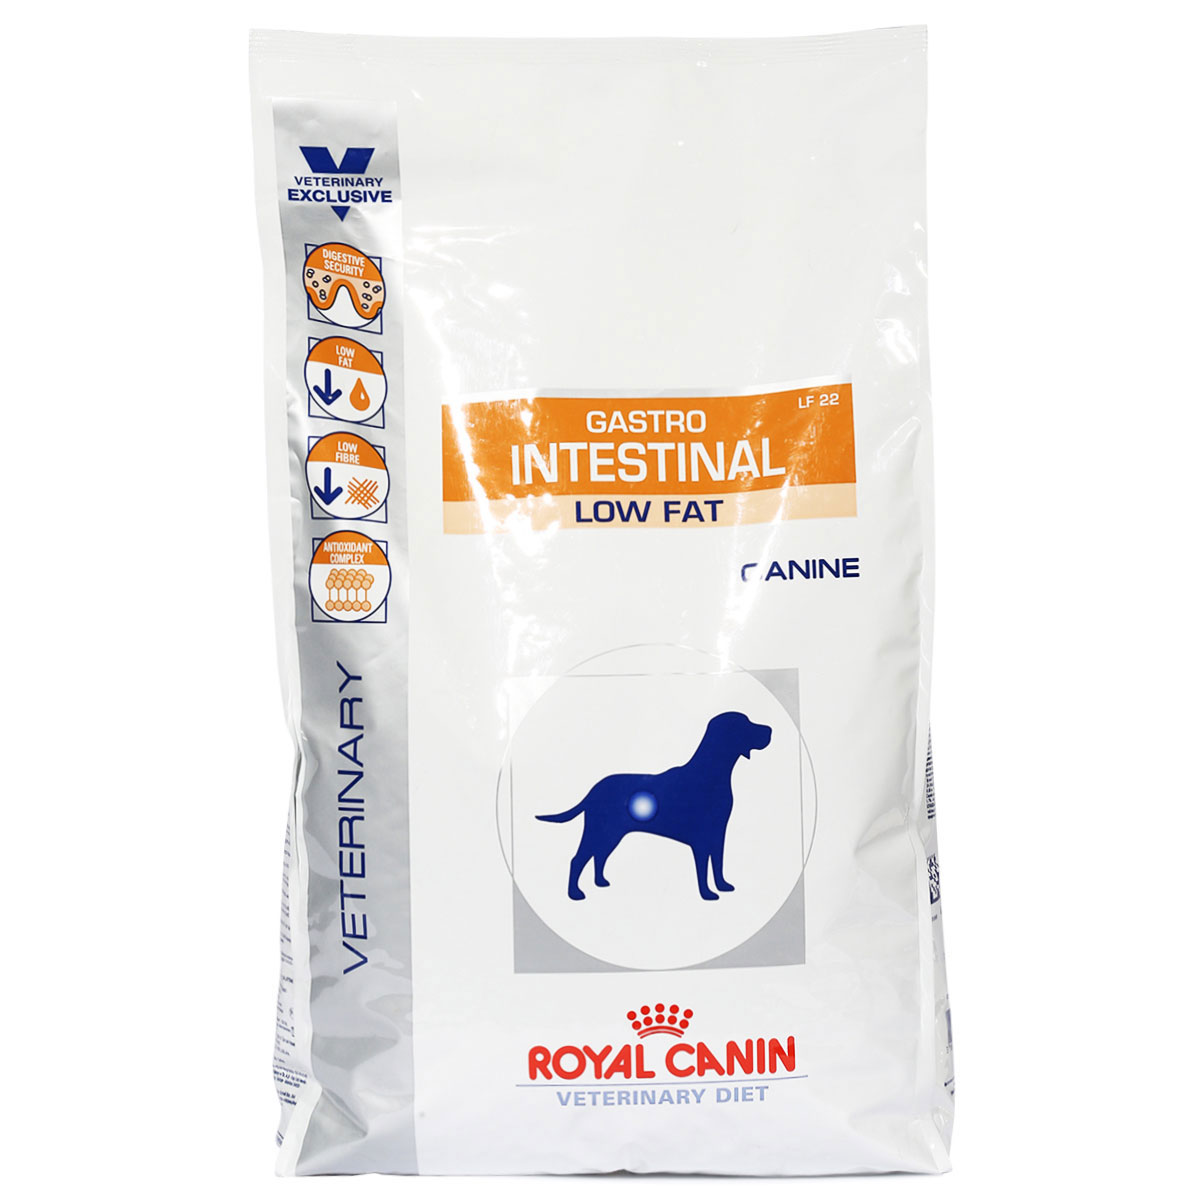 royal canin vet diet gastro intestinal low fat lf 22 bei zooroyal. Black Bedroom Furniture Sets. Home Design Ideas